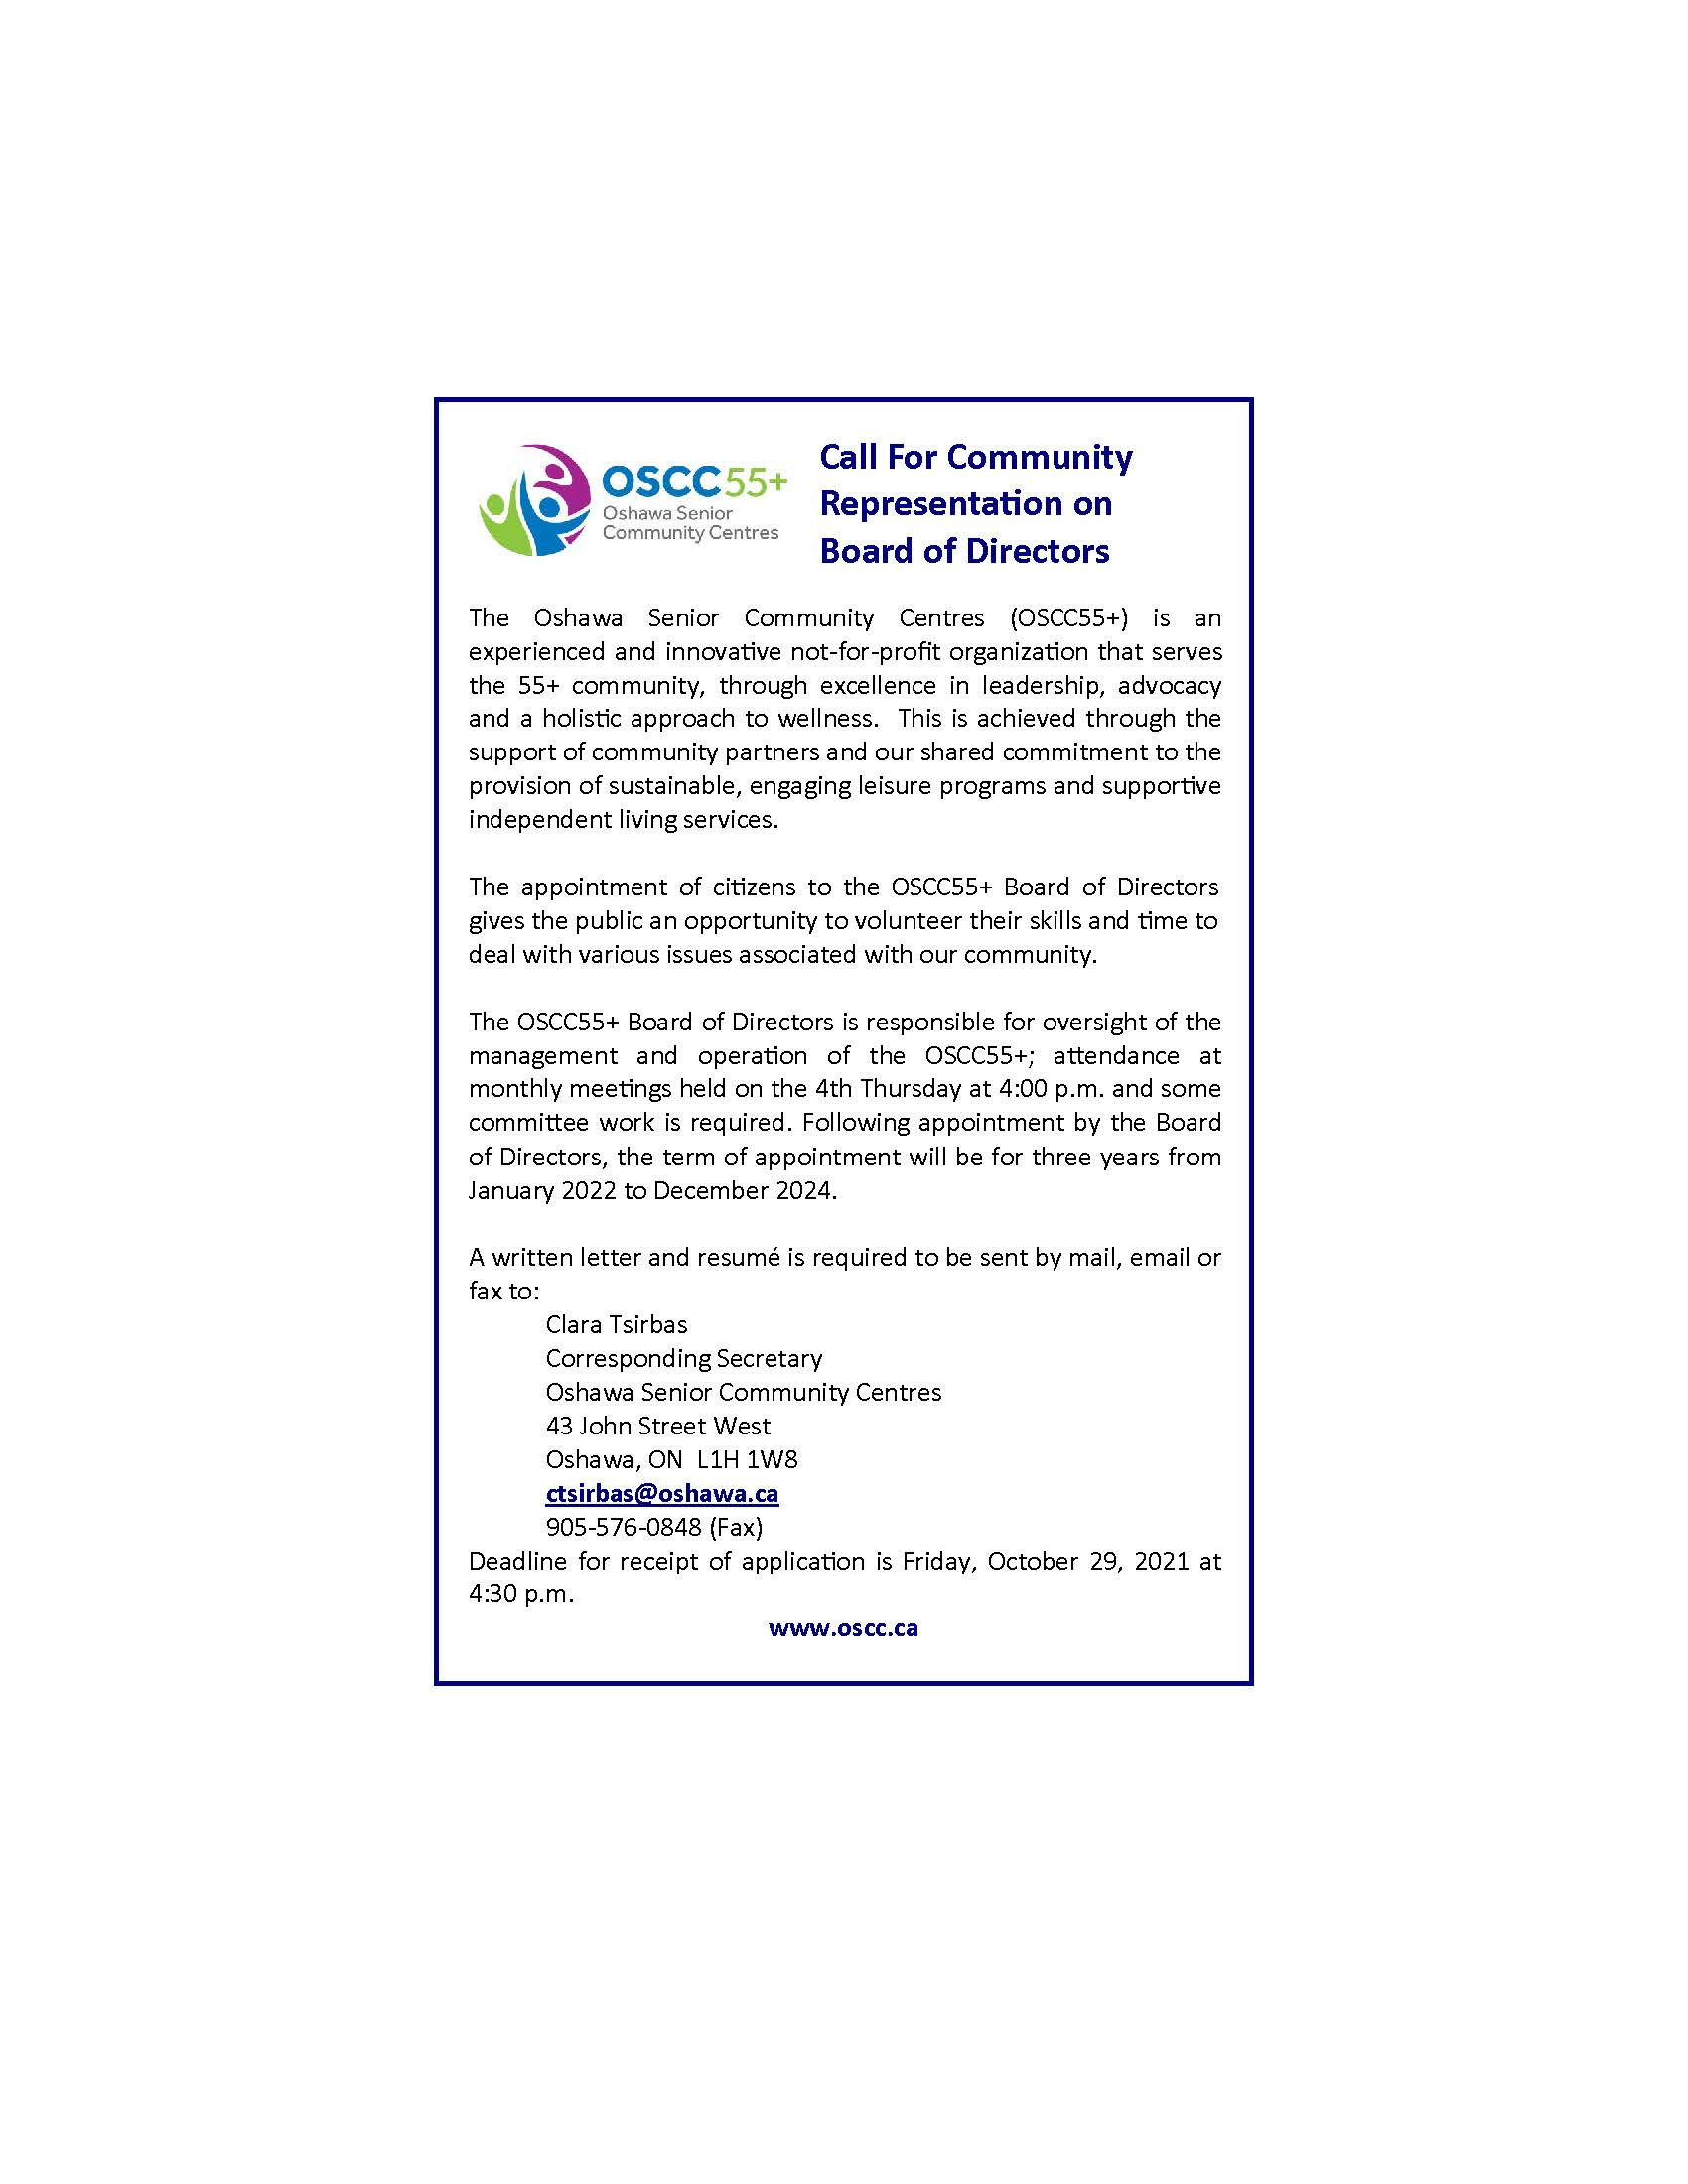 Call for Representatives on the BOD